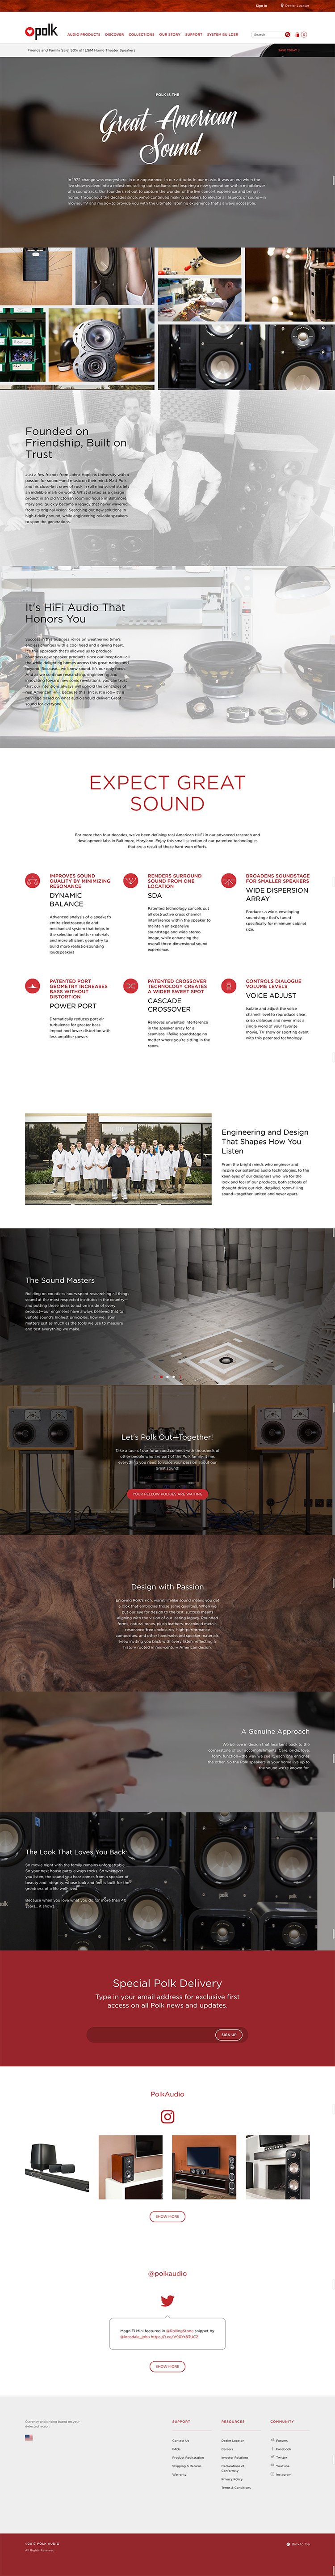 Our Story - Polk Audio.png